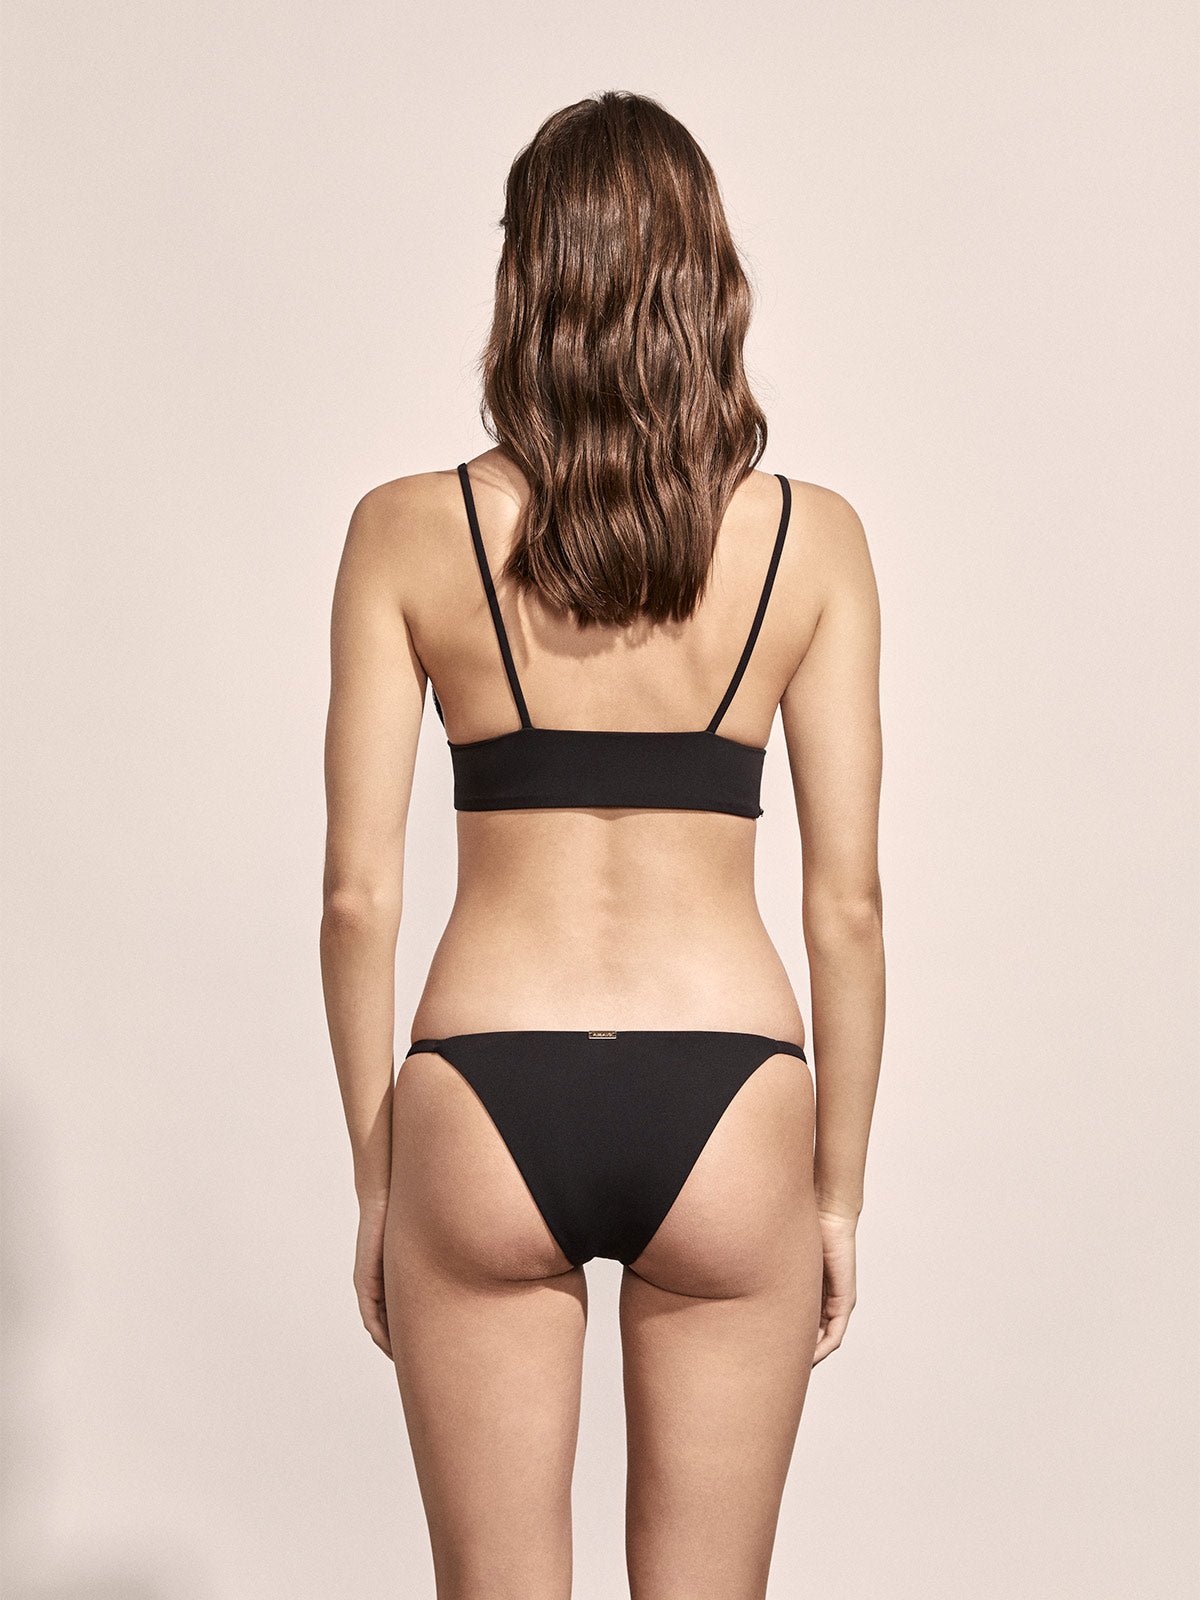 Dalì Bottoms | Black Dalì Bottoms | Black